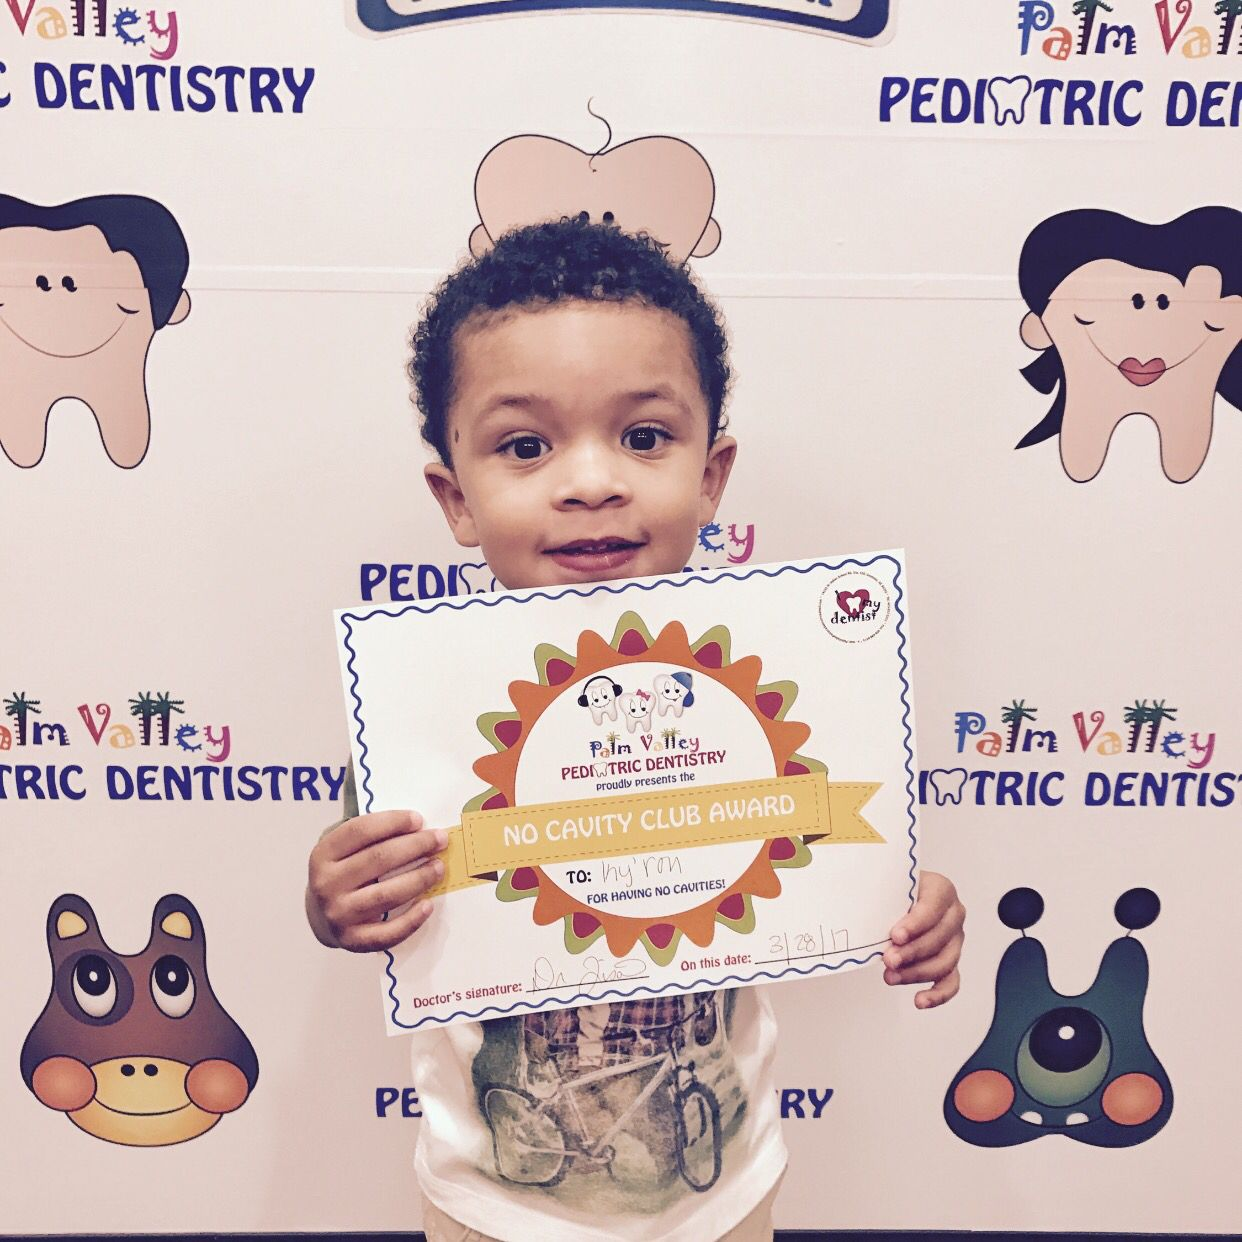 Nothing makes us happier than celebrating the success and hard work of our patients. We happily award the winner(s) with an official NO CAVITY CLUB certificate! Congratulations!   Palm Valley Pediatric Dentistry    www.pvpd.com #pvpd #kid #child #children #sweet #pretty #little #fun #family #baby #happy #smile #dentist #pediatricdentist #goodyear #avondale #surprise #phoenix #litchfieldpark #verrado #dentalcare #oralhealth #kidsdentist #childrendentist #love #cute #pch #westvalley